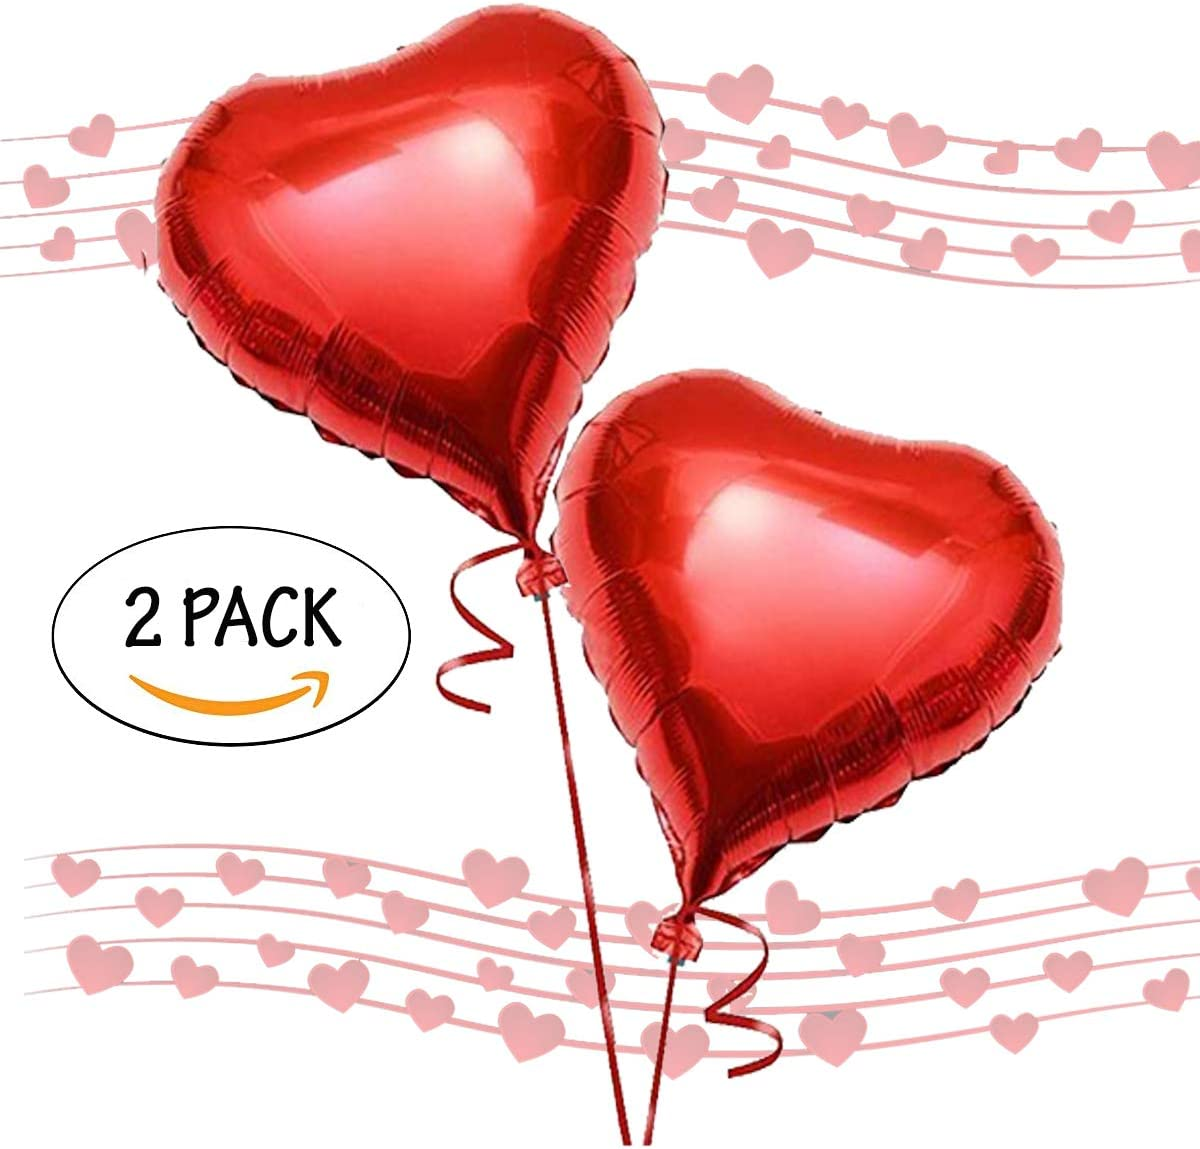 Filled Lizzy/® Valentines Day HUGE Red Heart Shaped Romantic Love Foil Balloons Pack of 2 60 CM in Size Balloons for Valentines Day Wedding Bridal Shower Anniversary /& Engagement Decoration